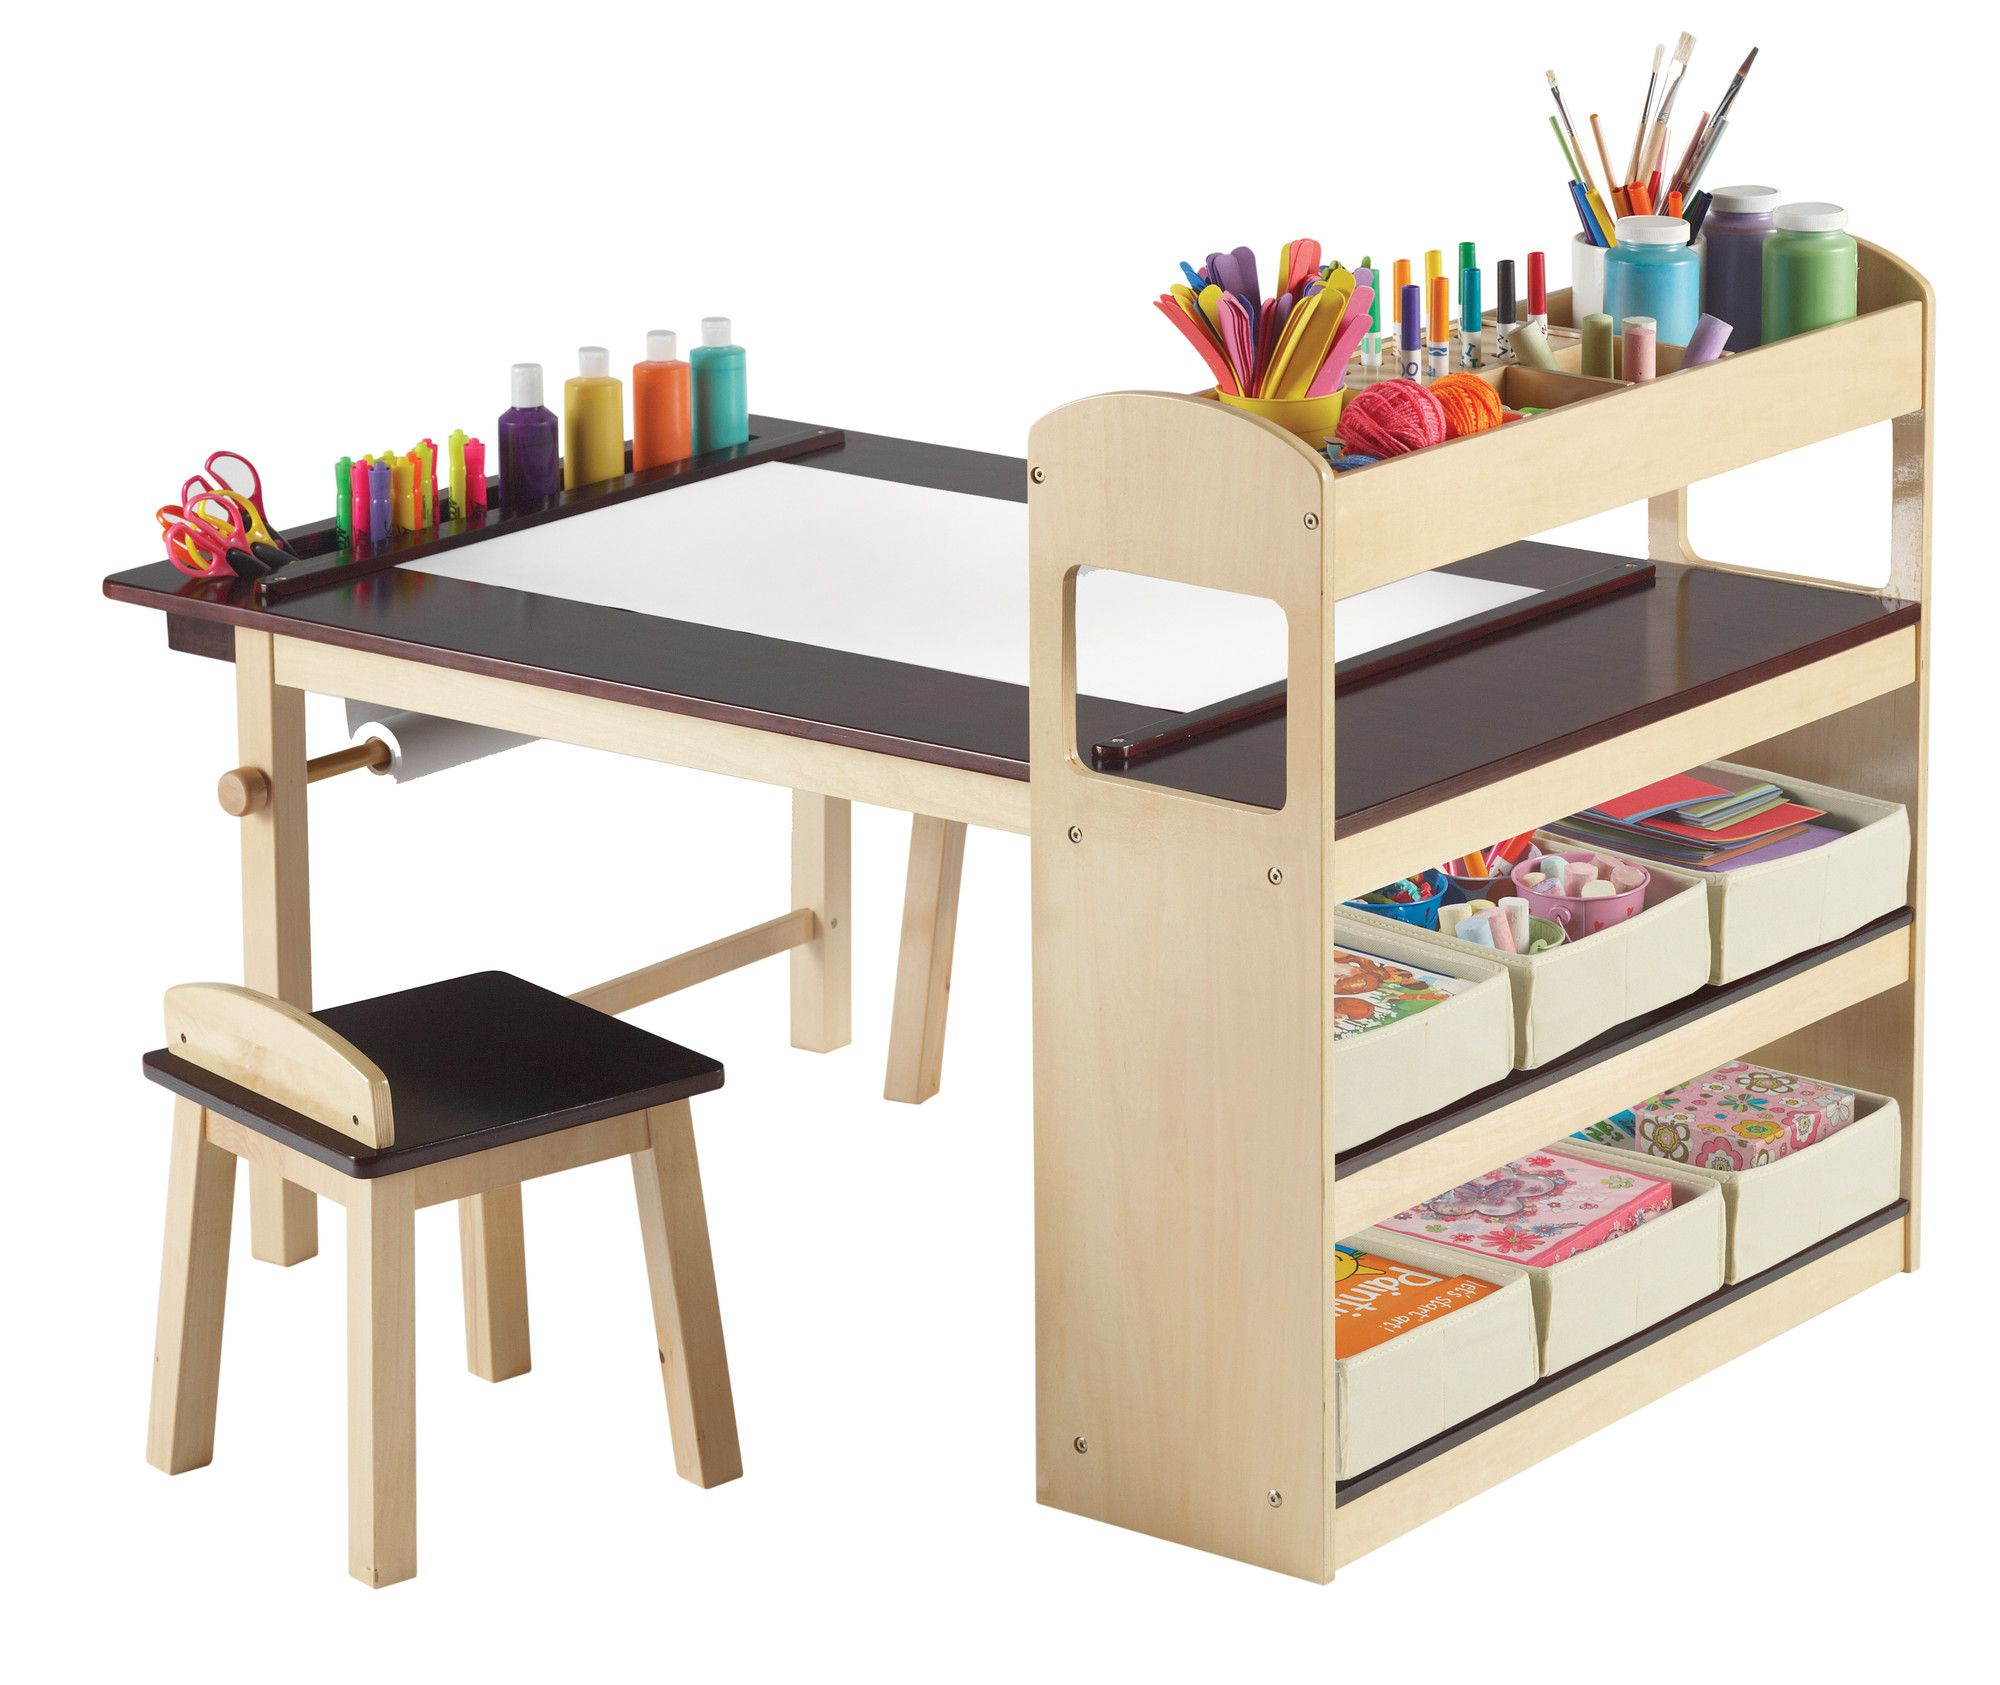 Guidecraft Deluxe Art Center Allmodern Kids Art Corner Kids